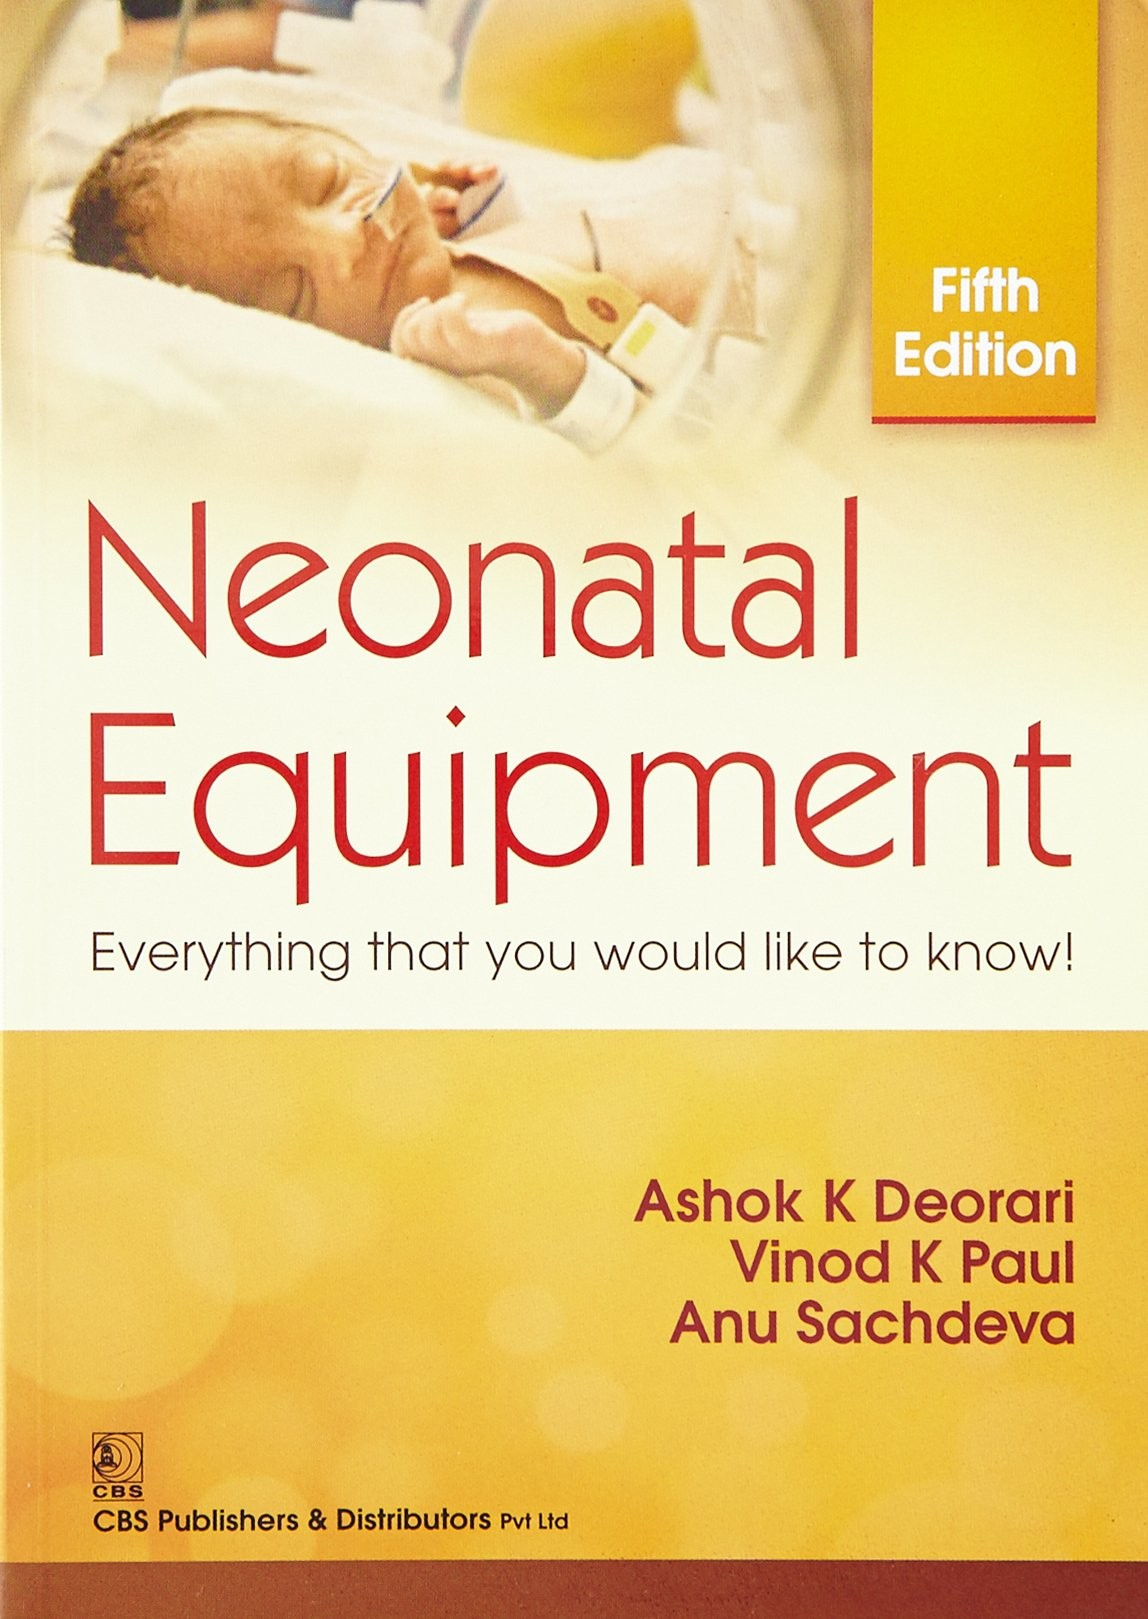 Neonatal Equipment, Everything that you would like to know